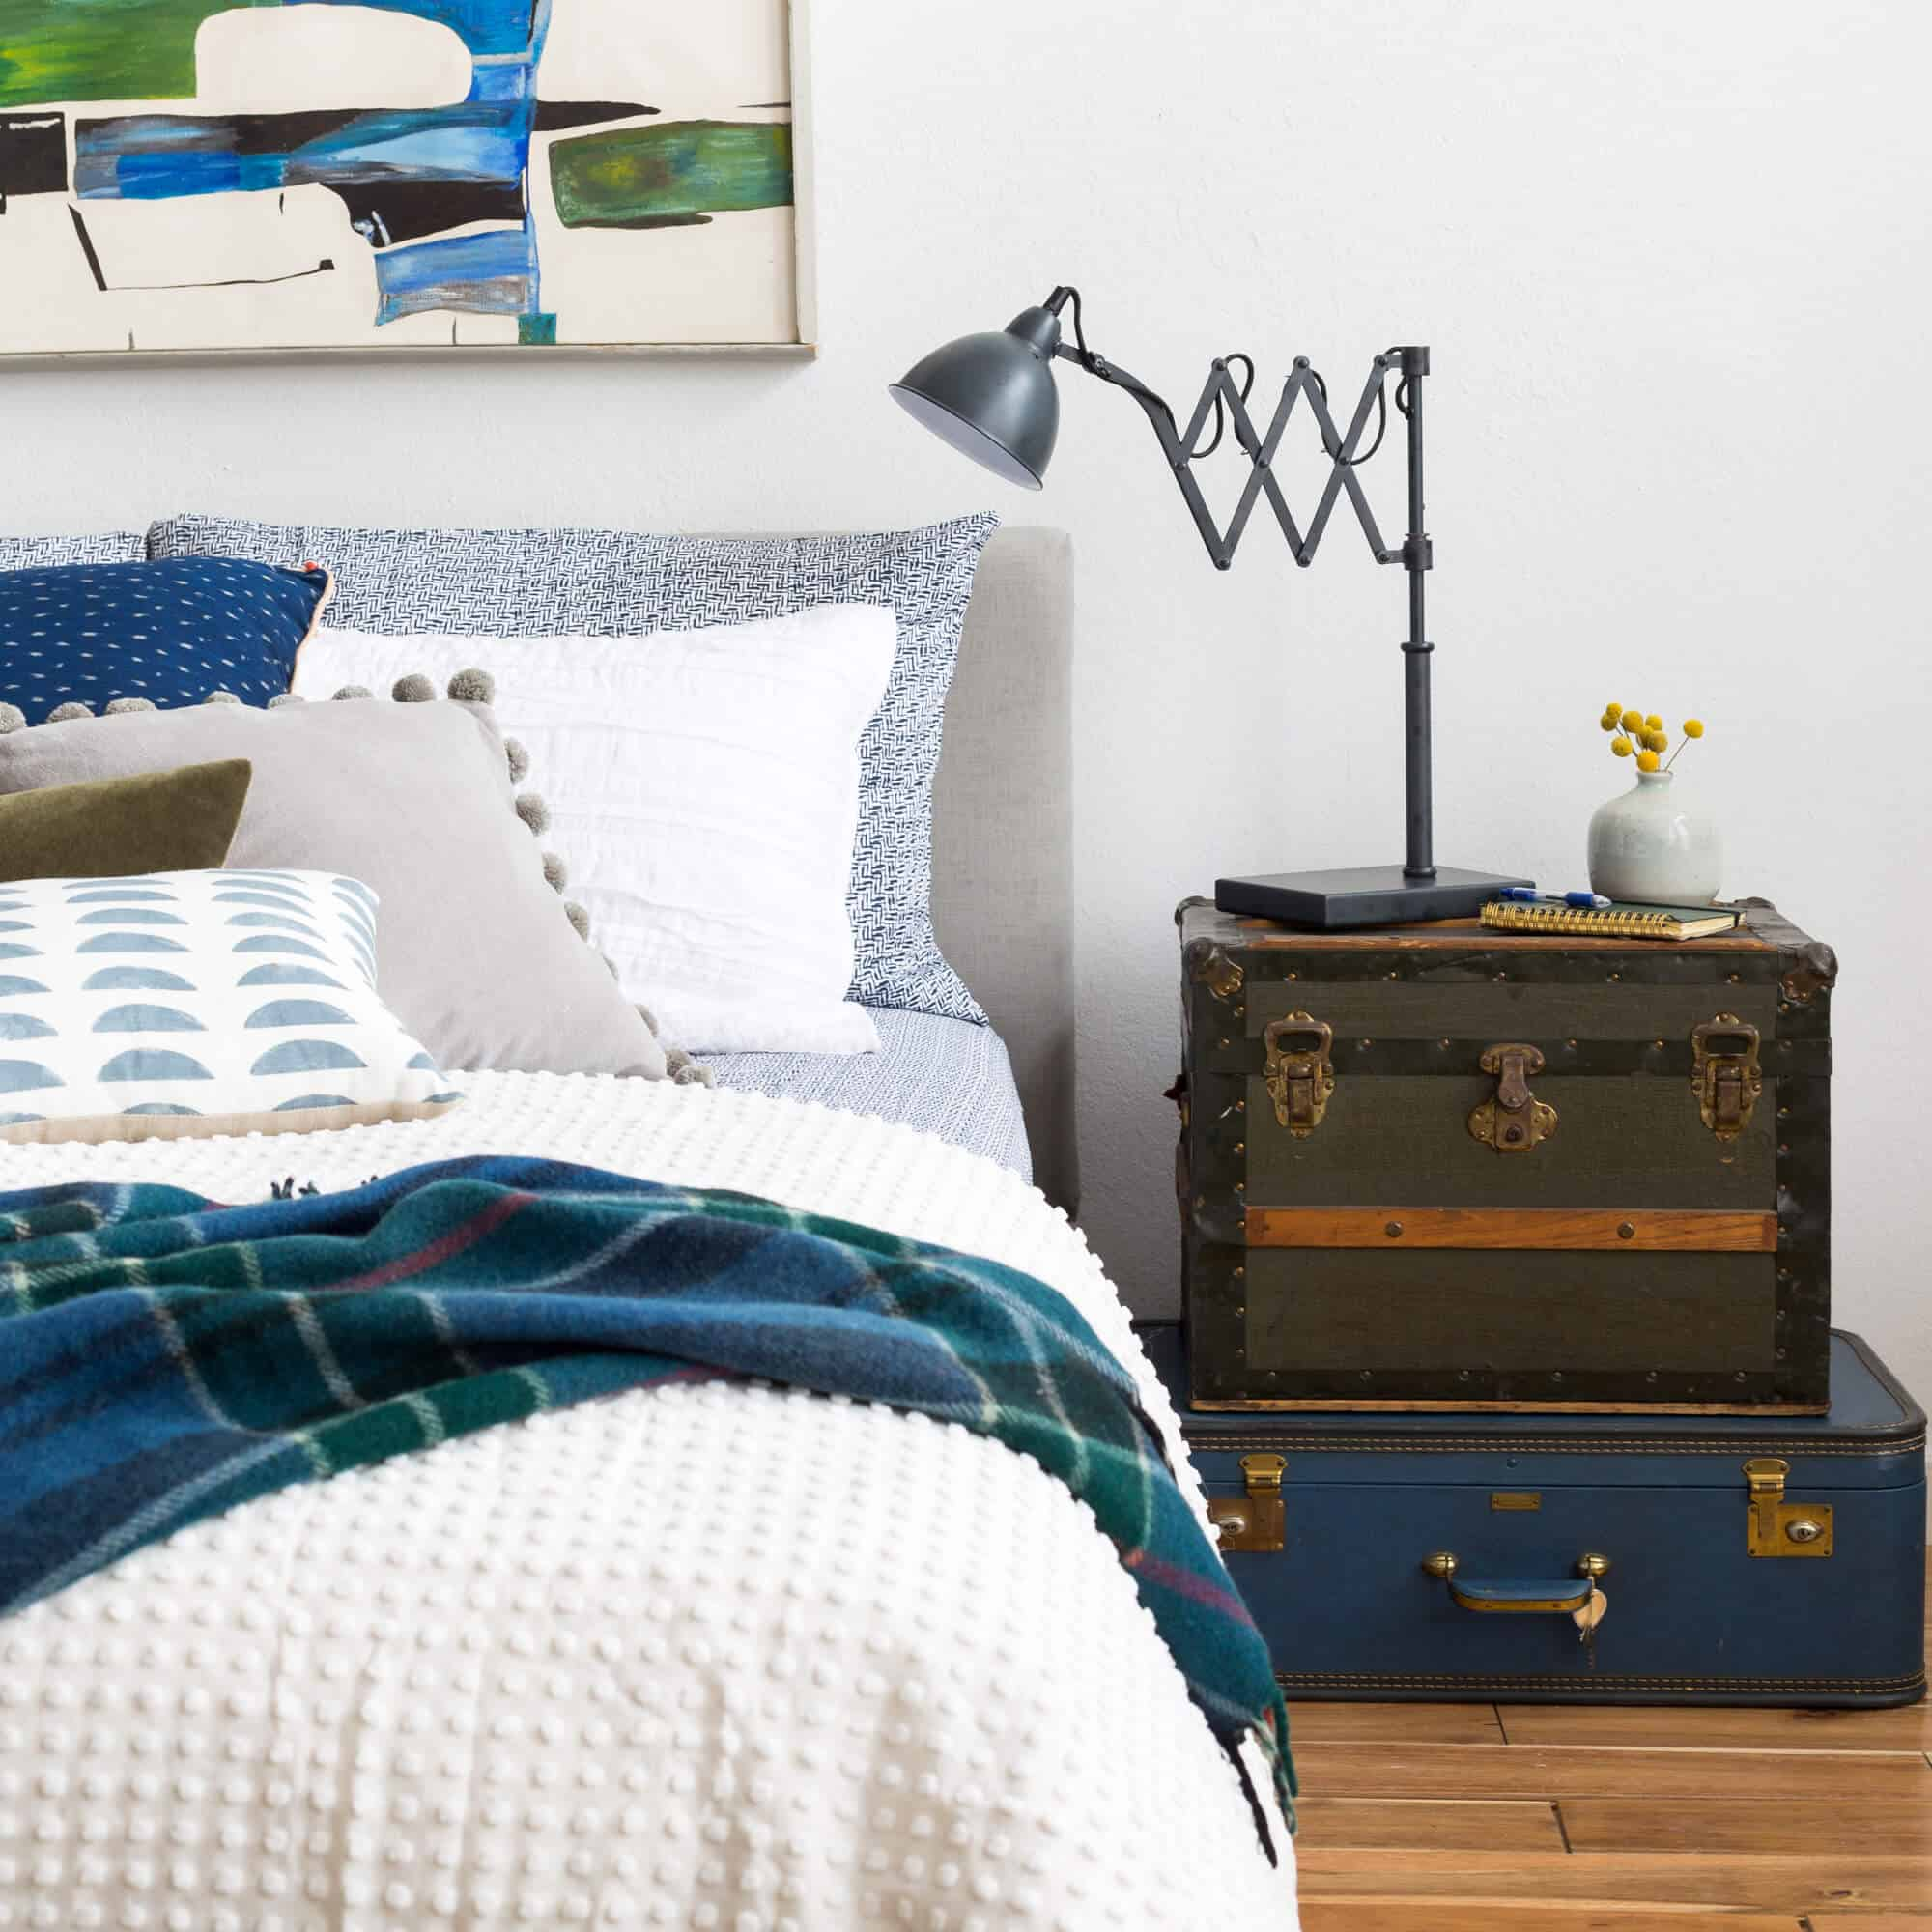 Blue and Green_Midcentury_Blue Green_Cabin_Rustic_Casual_Eclectic